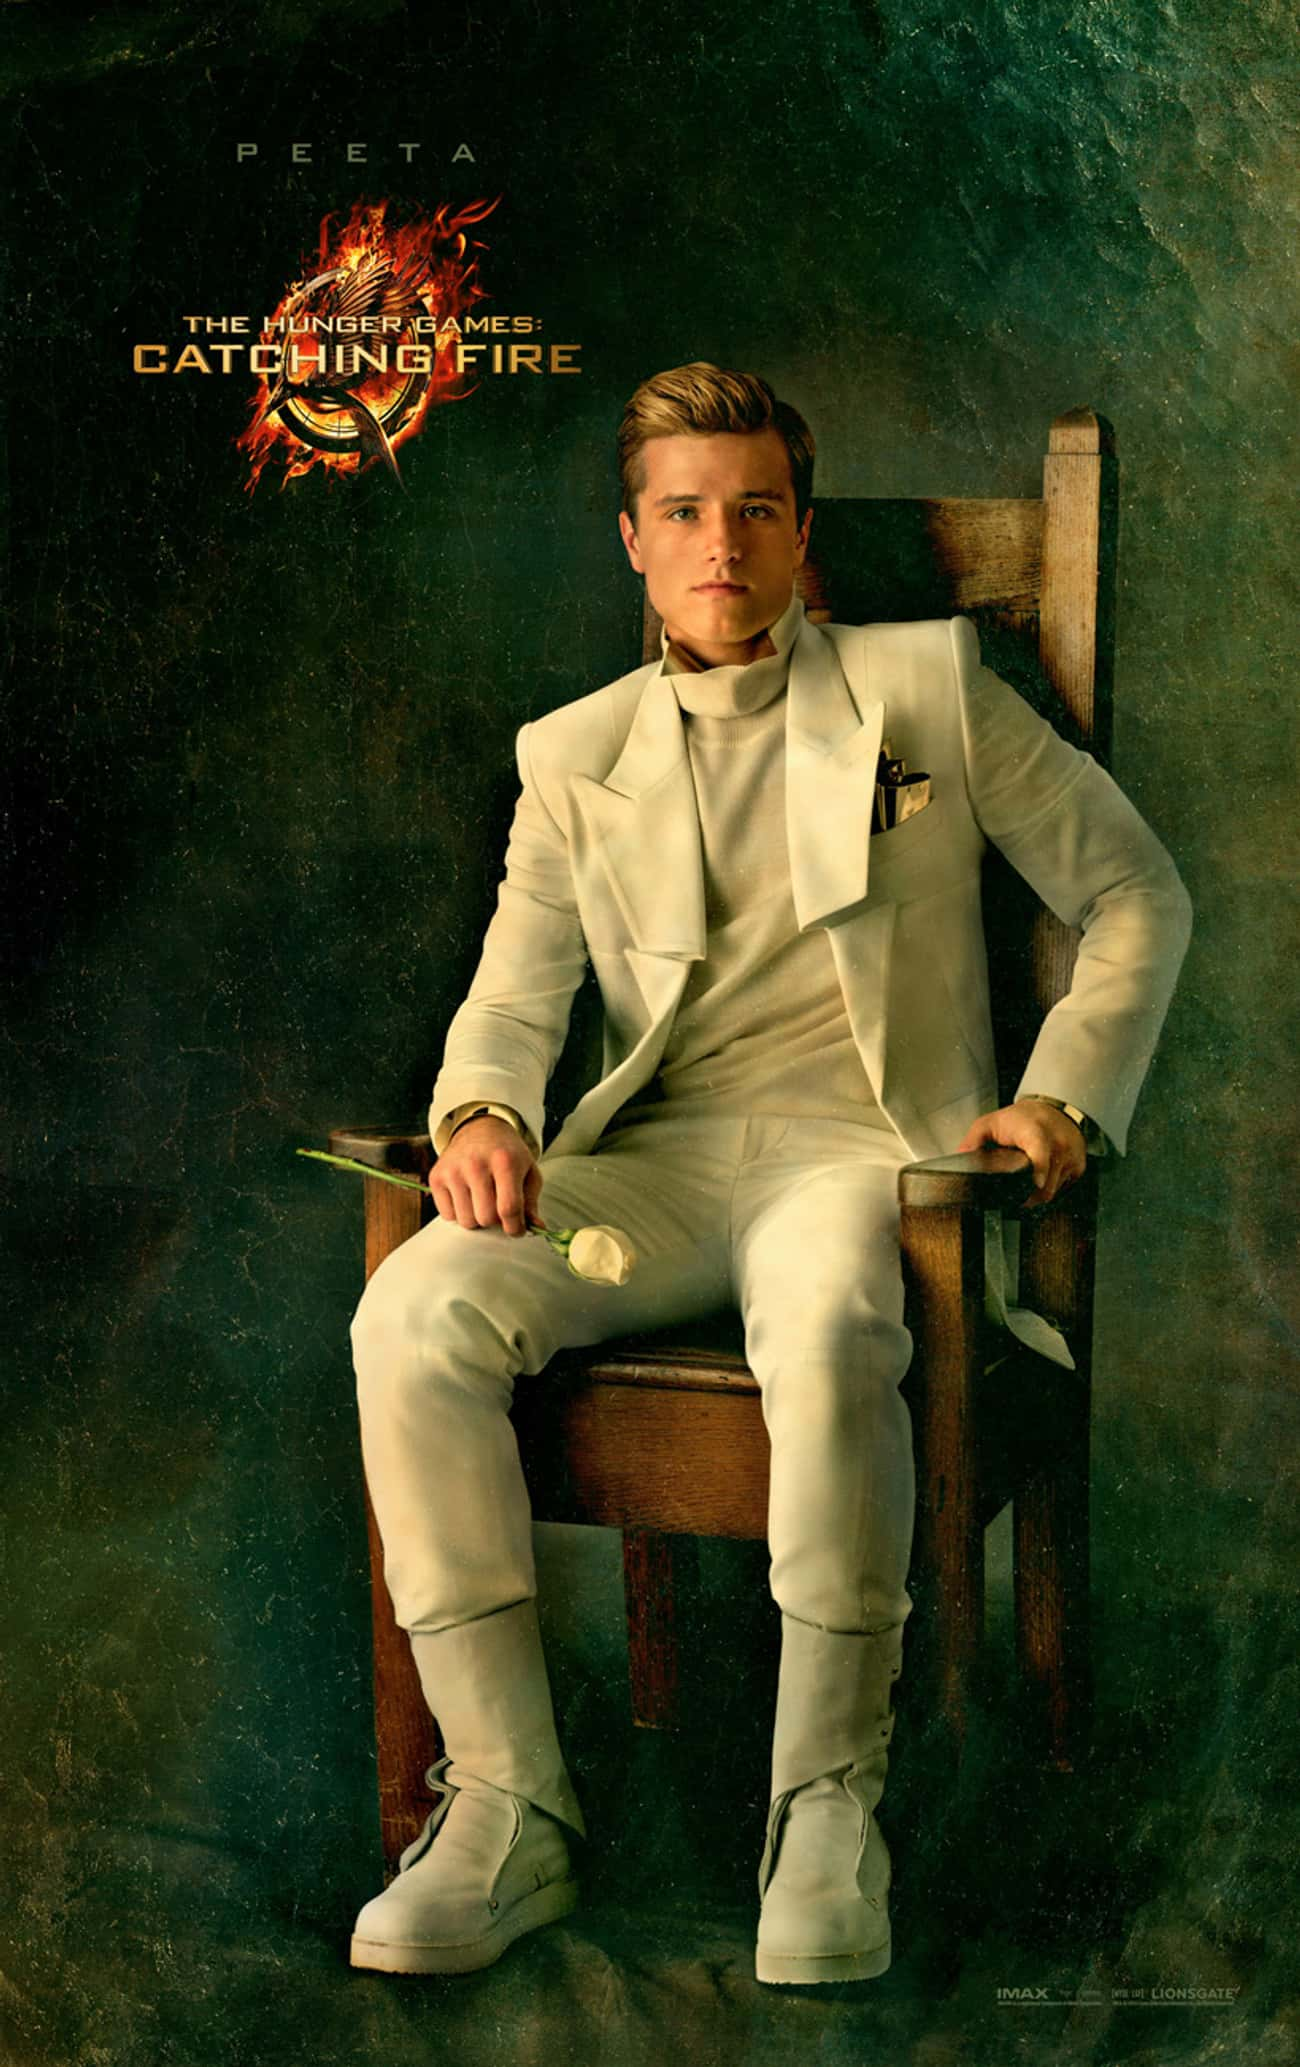 Peeta Mellark in the Movies: Brown-Eyed and Able-Bodied